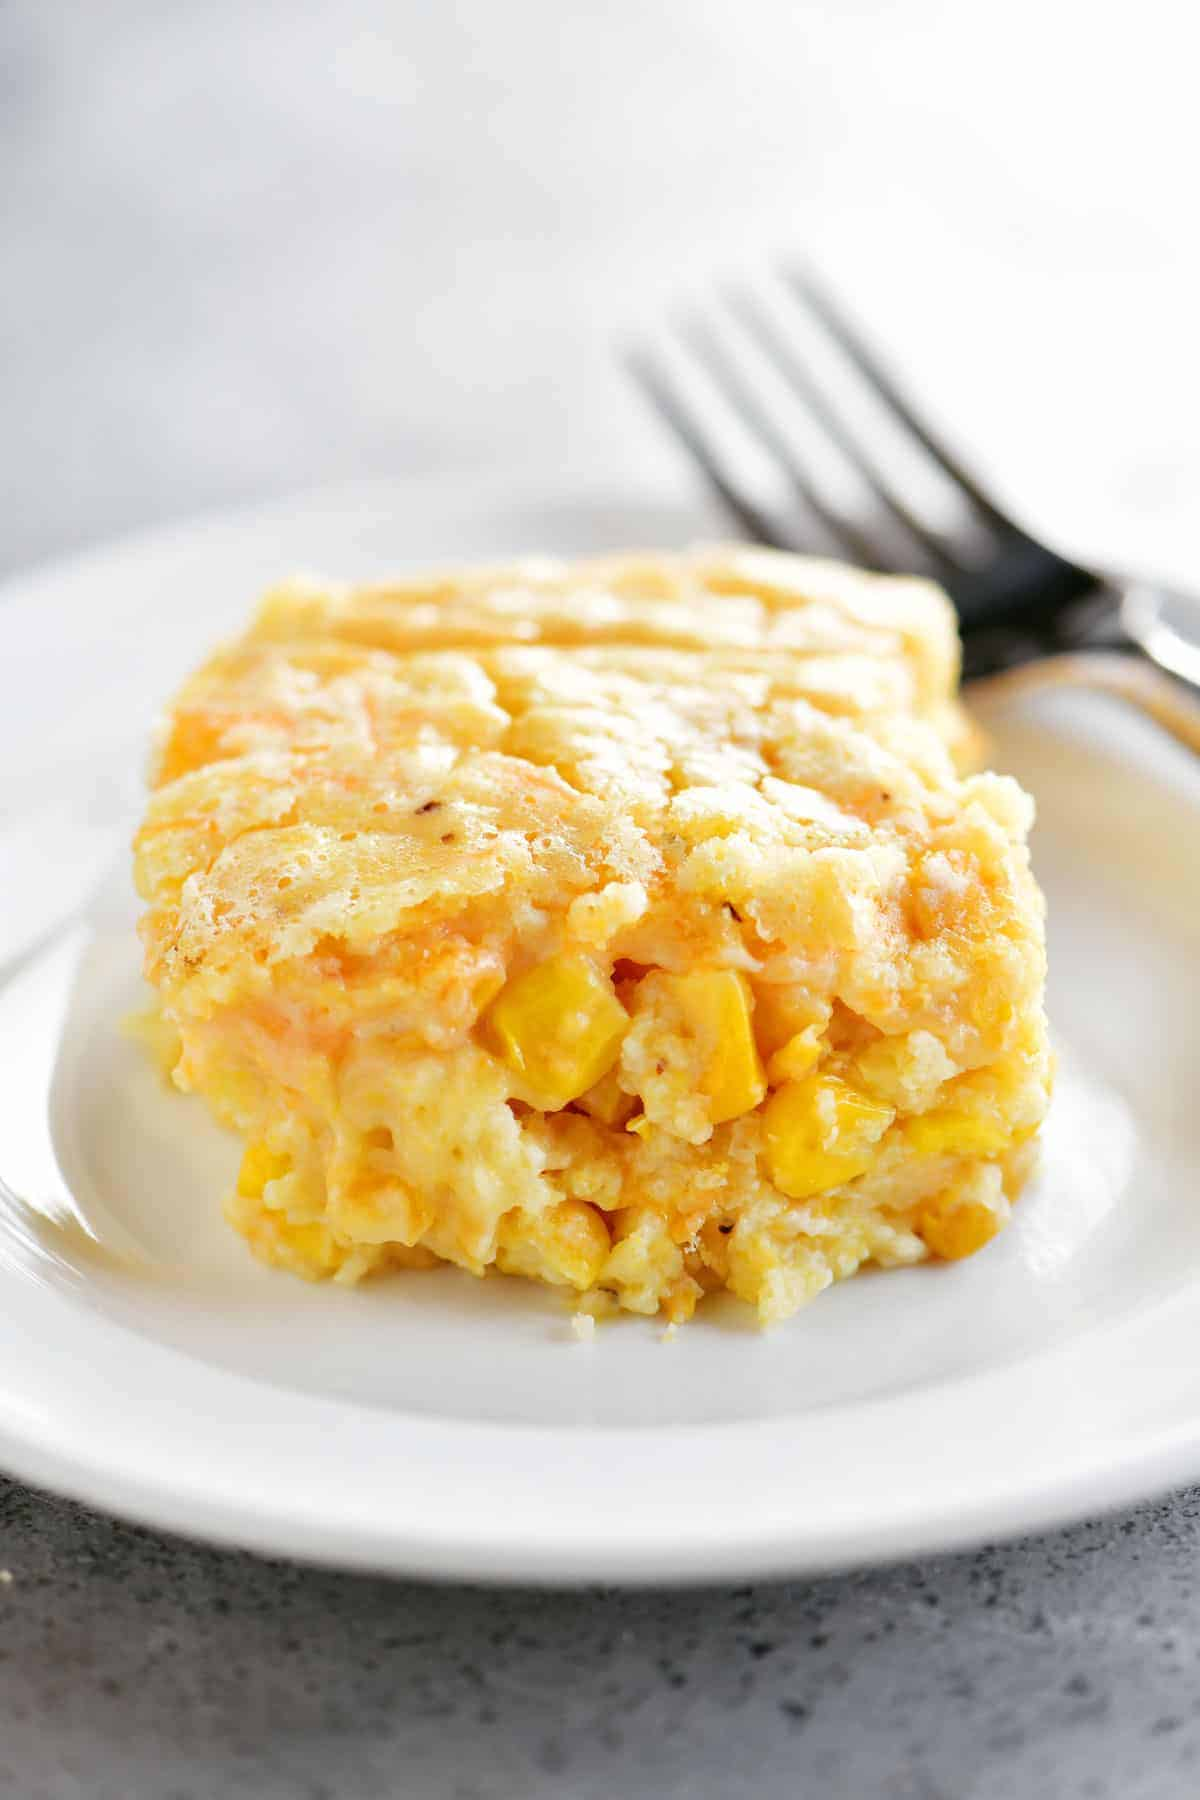 slice of corn casserole on a white plate